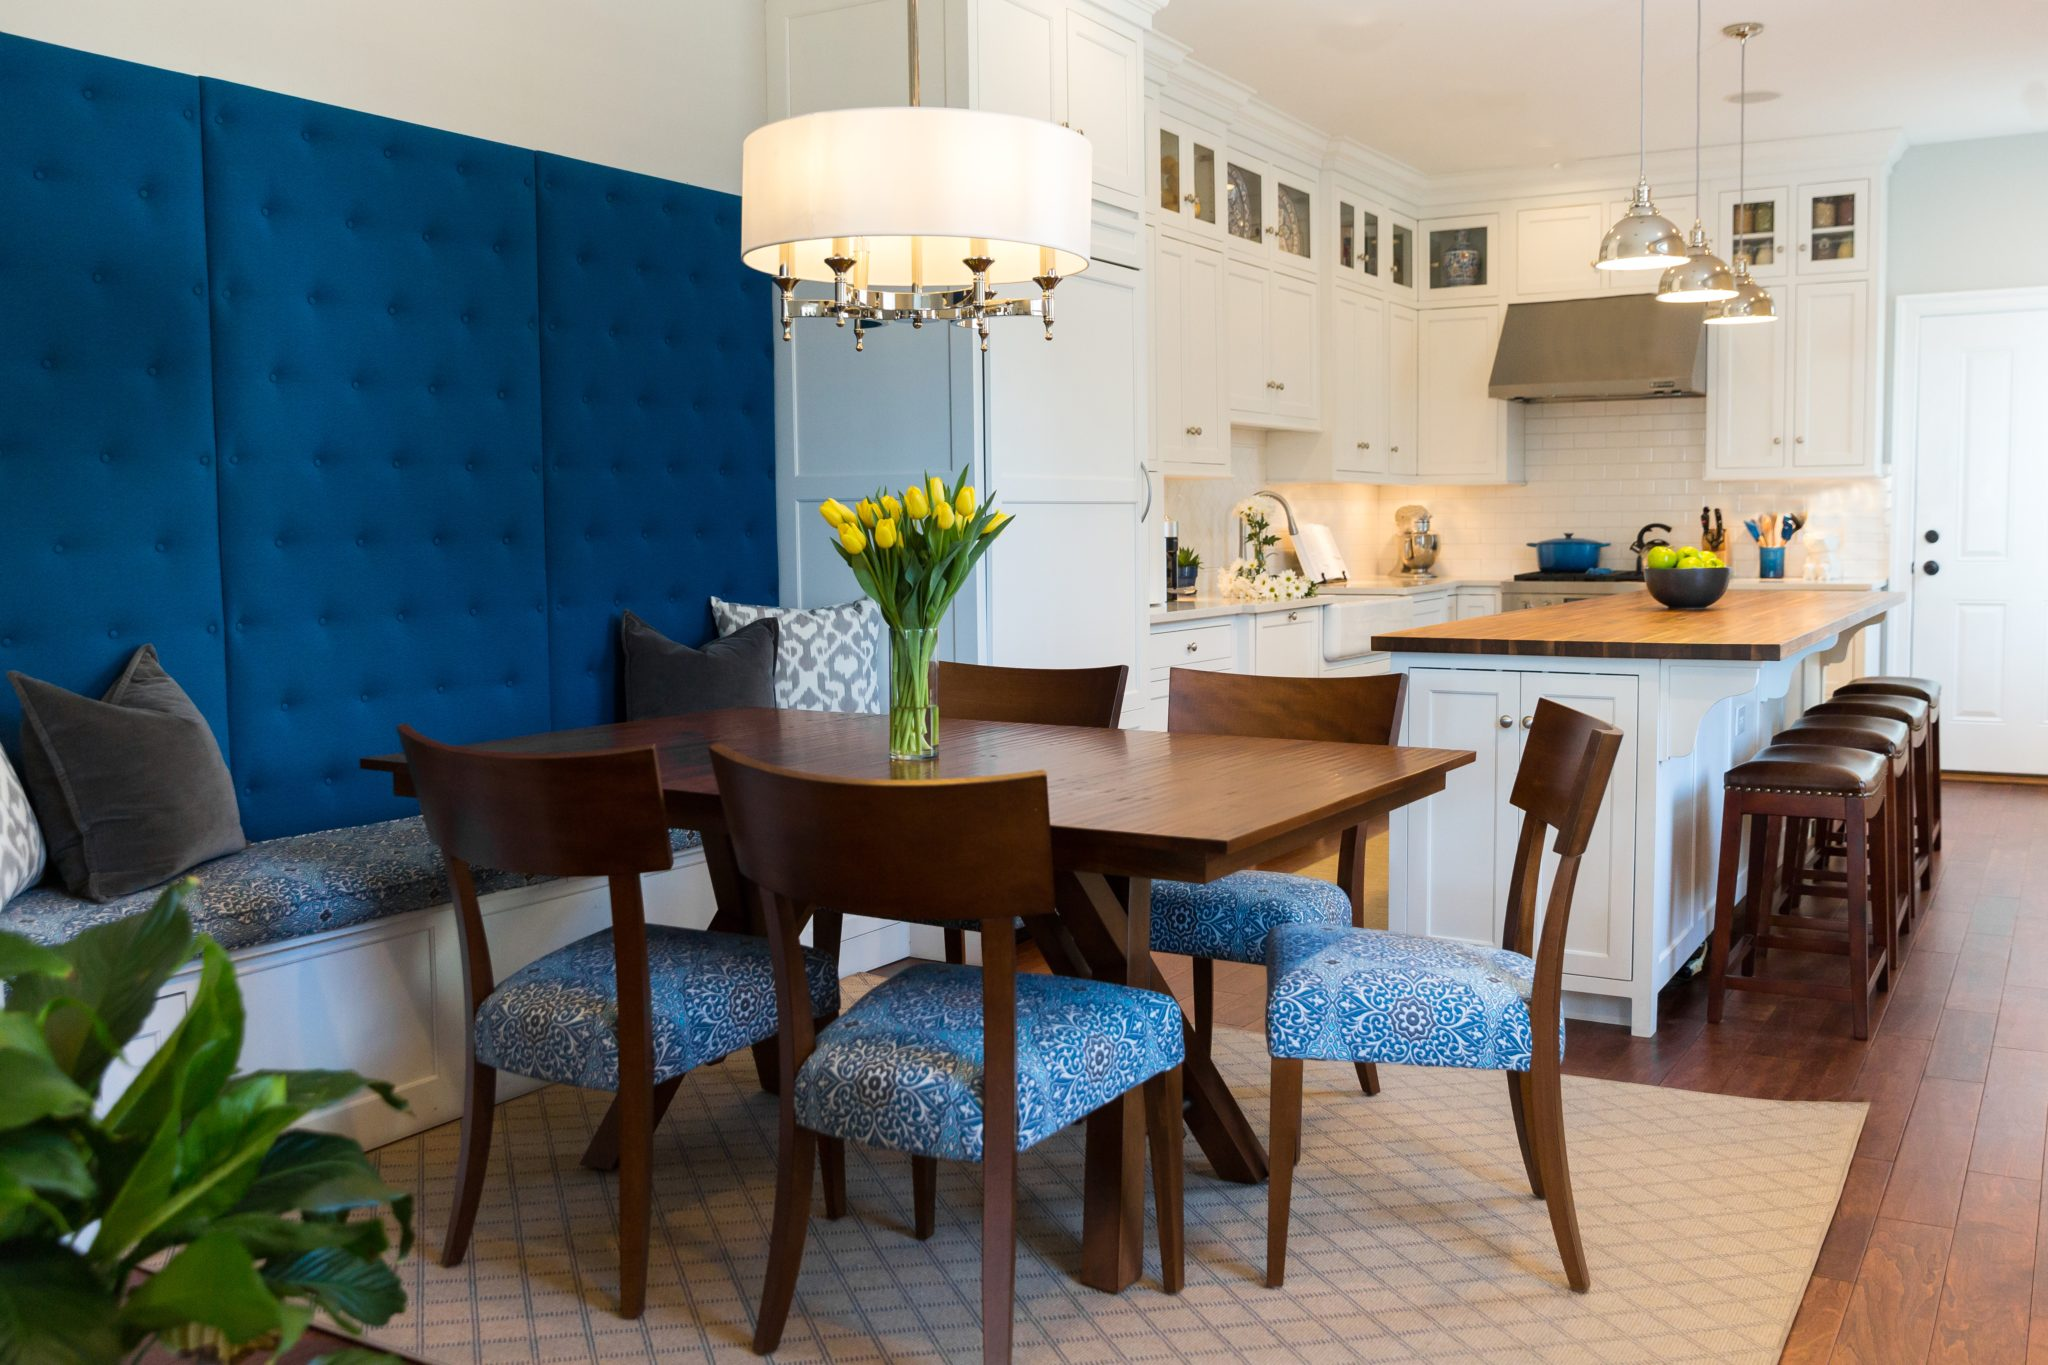 An open concept white kitchen and dining room with a custom banquette. By Laura Hodges Studio